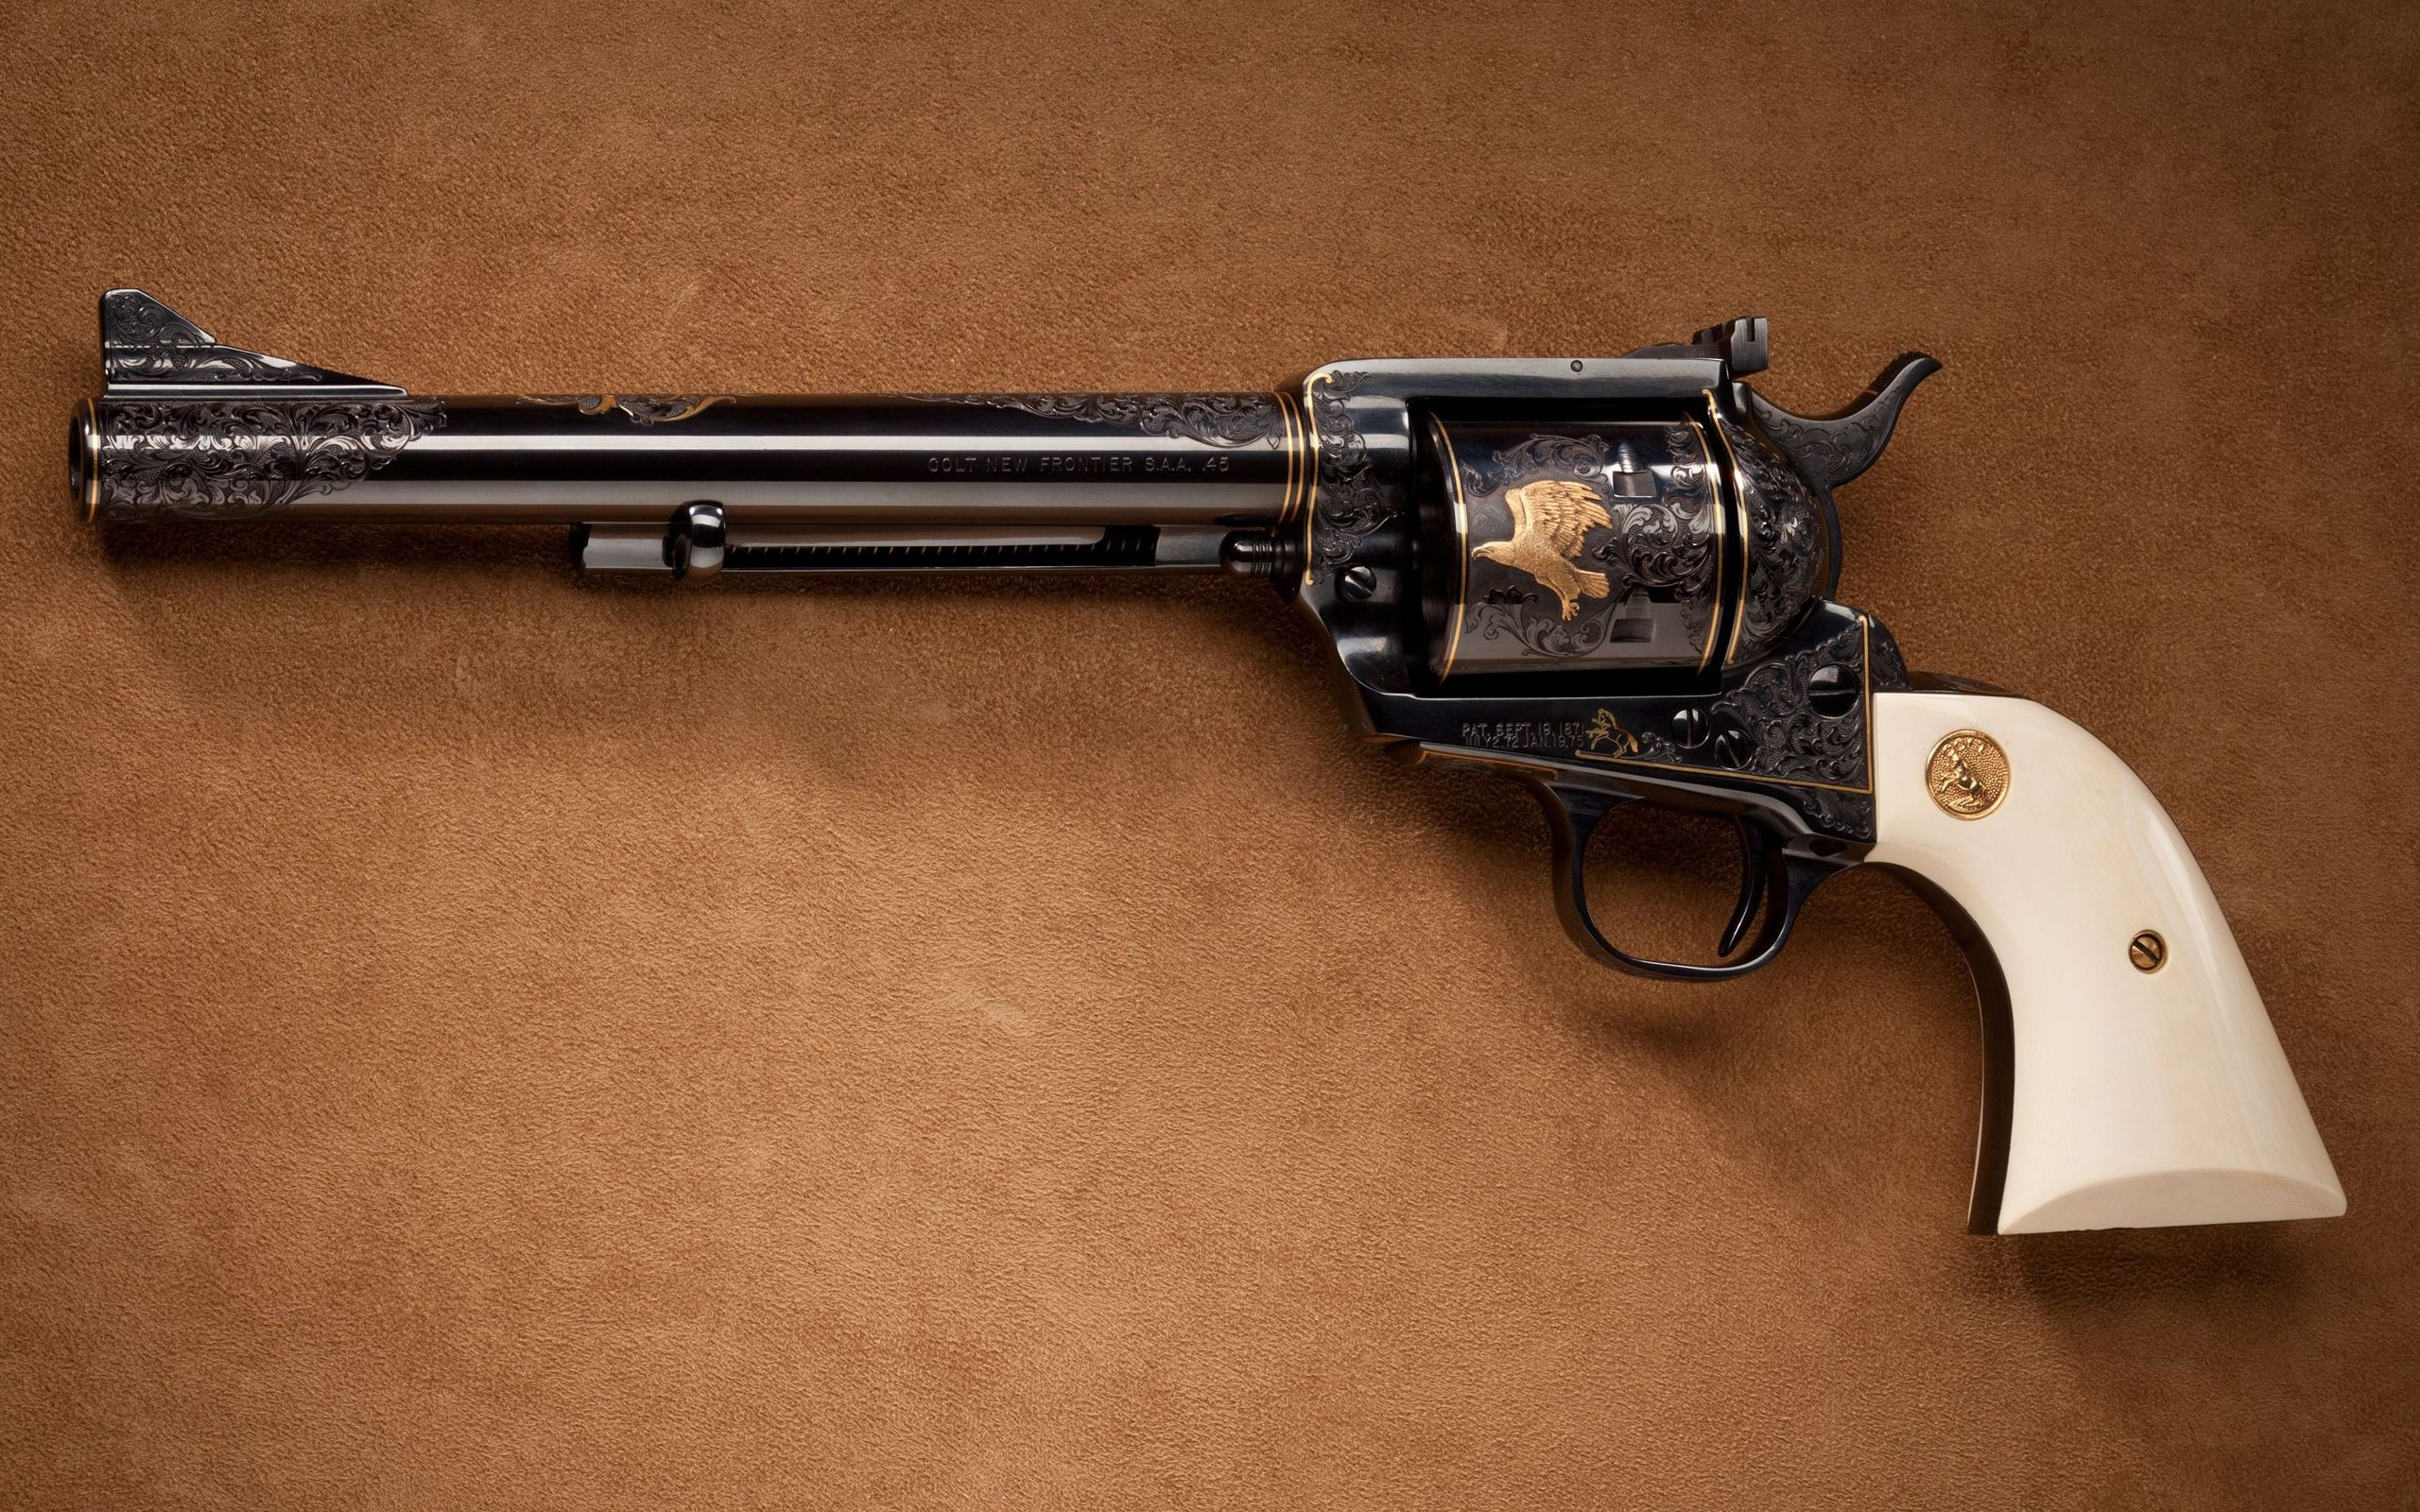 HQ Colt New Frontier Revolver Wallpapers | File 1262.61Kb